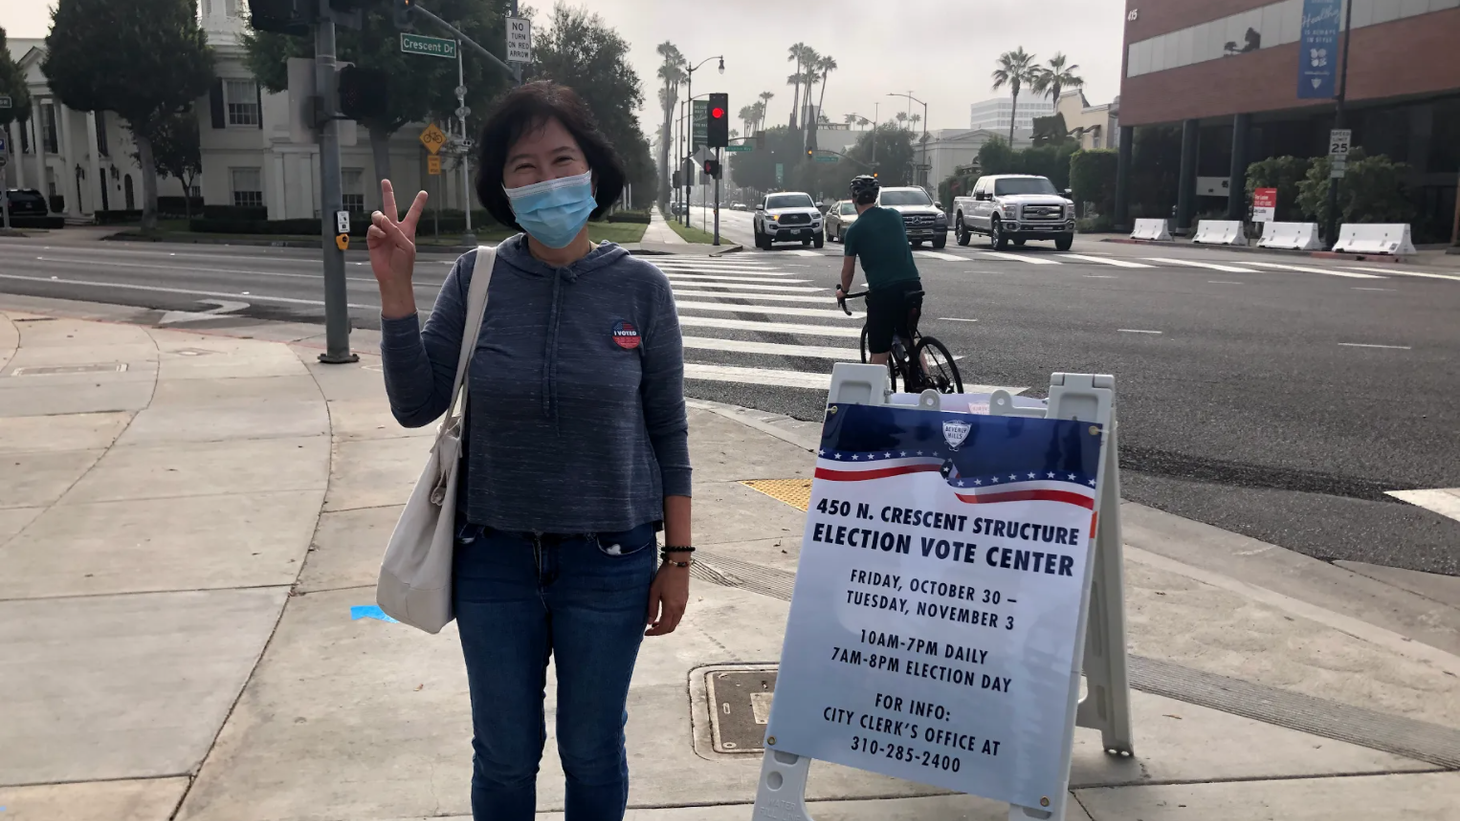 Helen Tang voted at Beverly Hills City Hall. She says she voted in person because she only trusted herself to make sure her ballot counted. This is her first time using the new voting booths. She said the process was very smooth and there was no line.